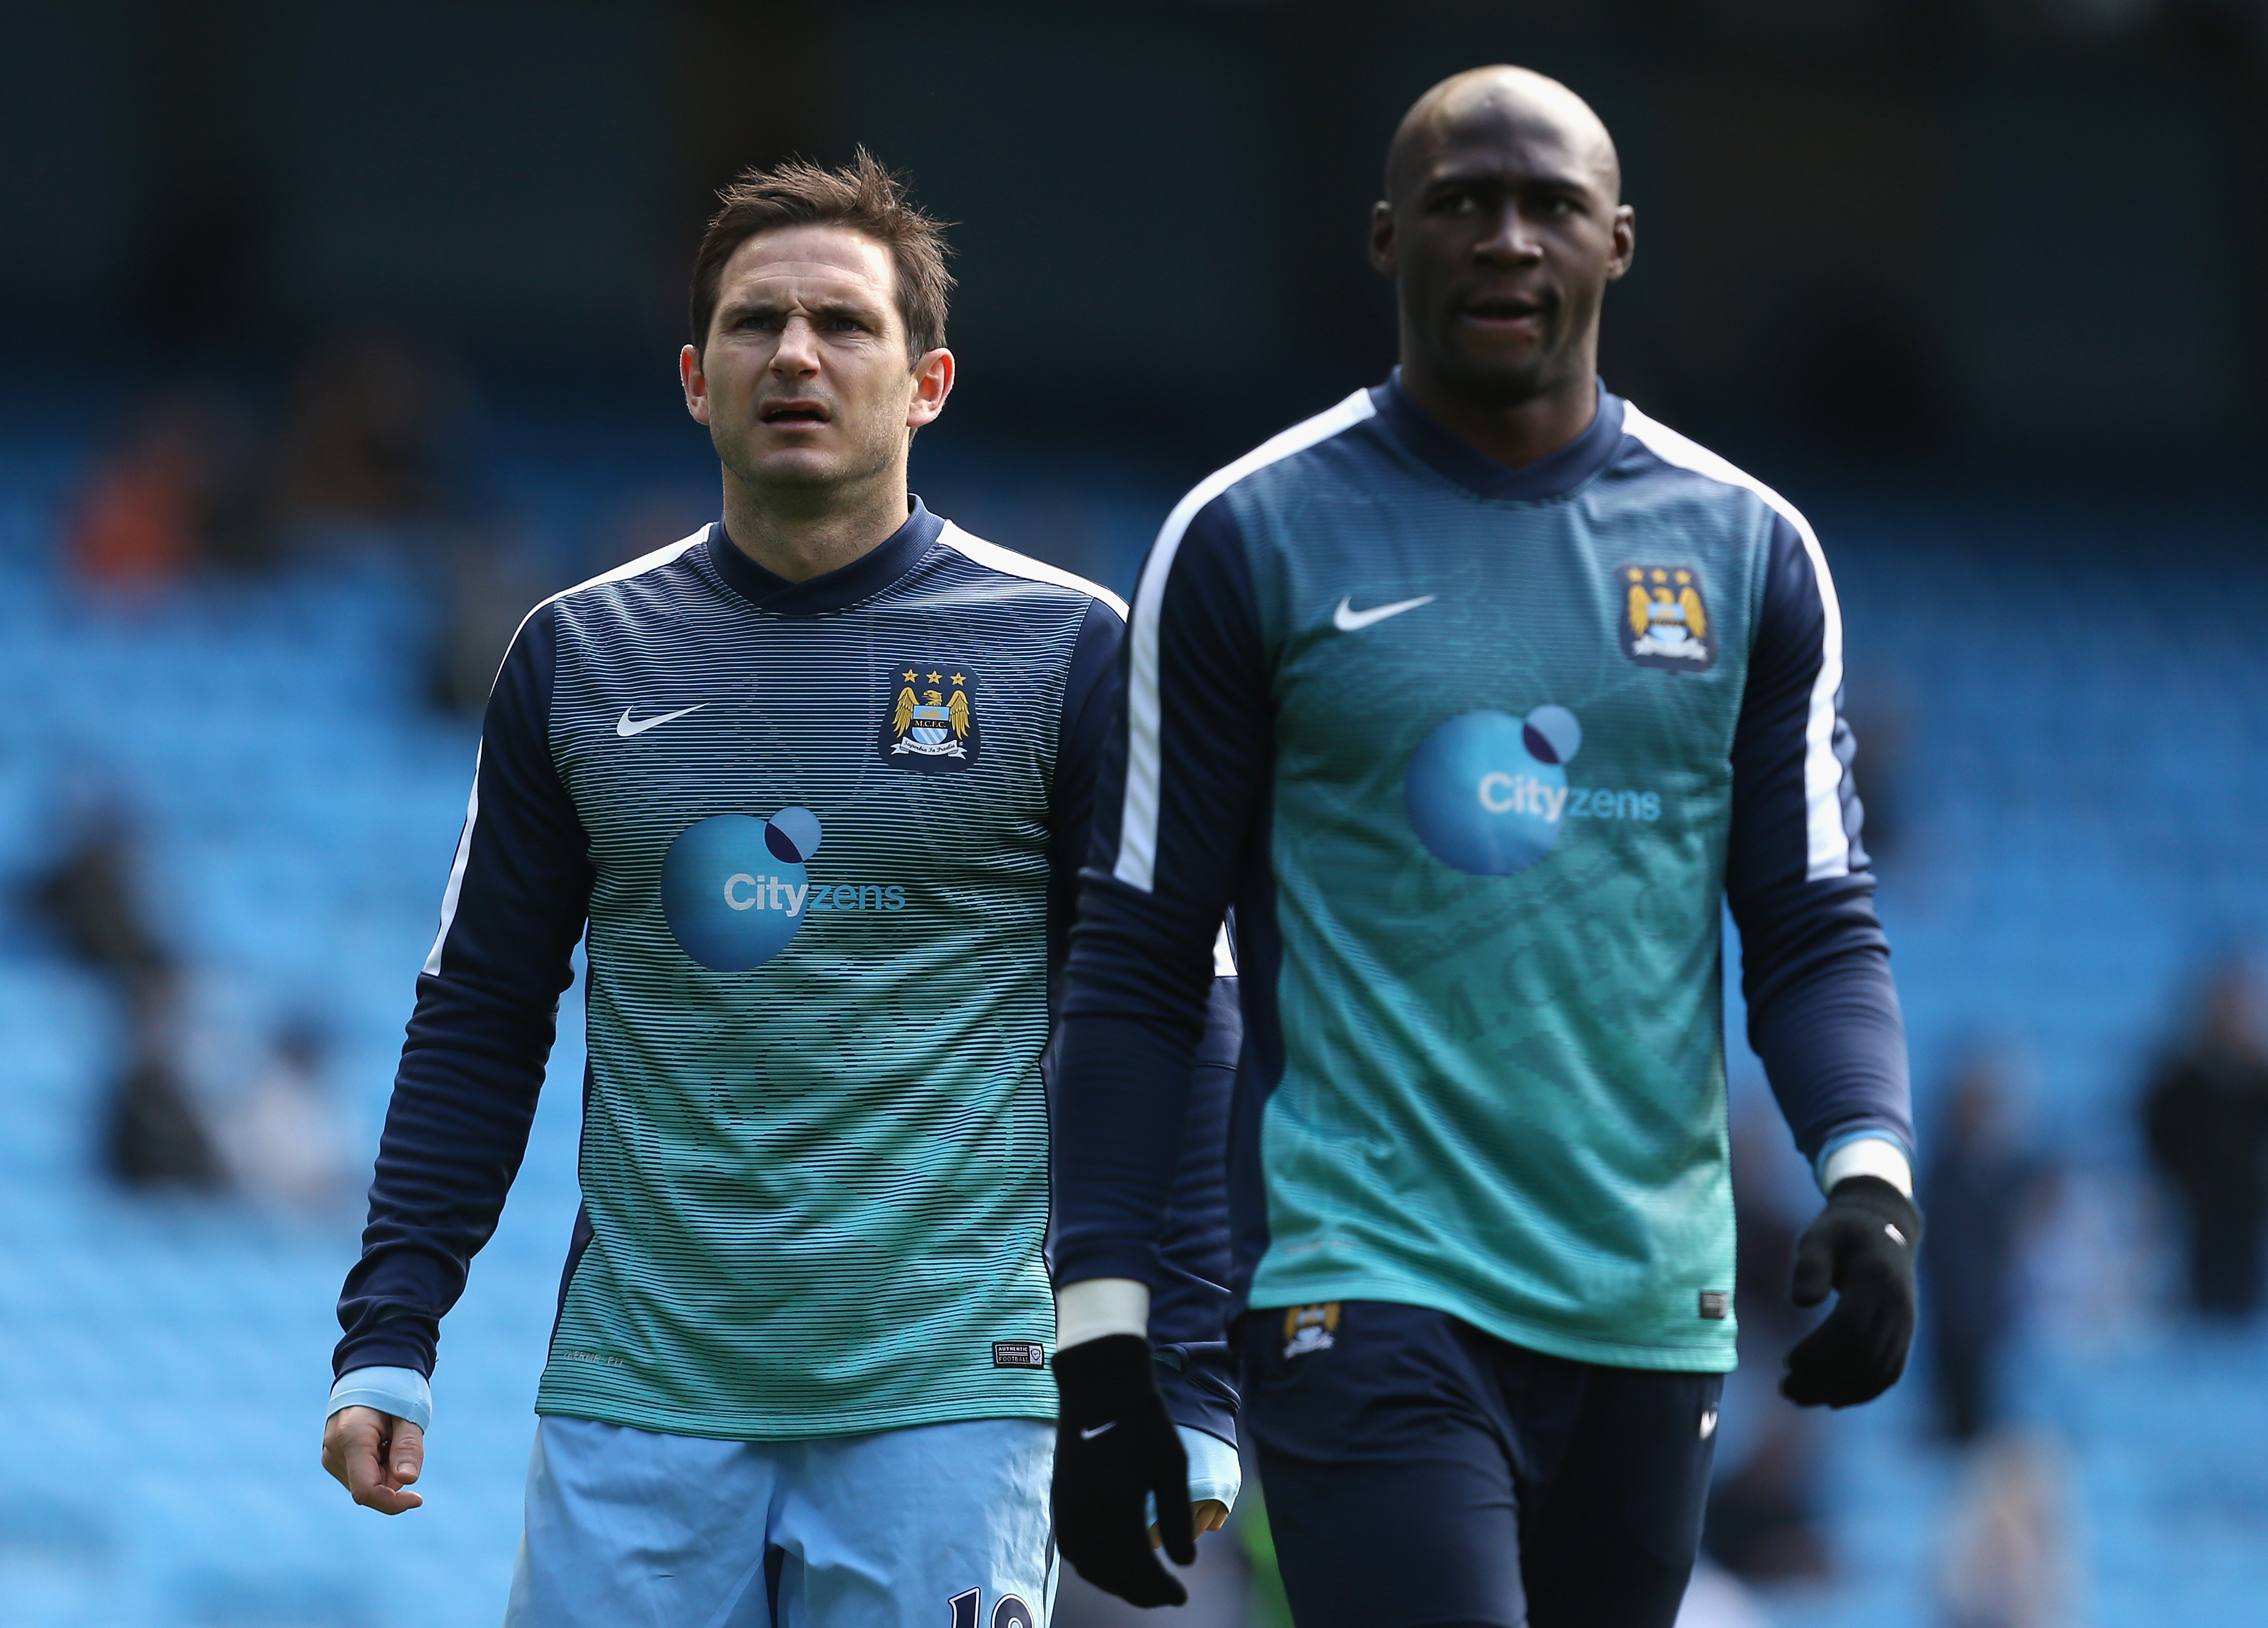 Frank Lampard of Manchester City (L) and Eliaquim Mangala of Manchester City warm up prior to the Barclays Premier League match between Manchester City and West Bromwich Albion at Etihad Stadium on March 21, 2015 in Manchester, England.